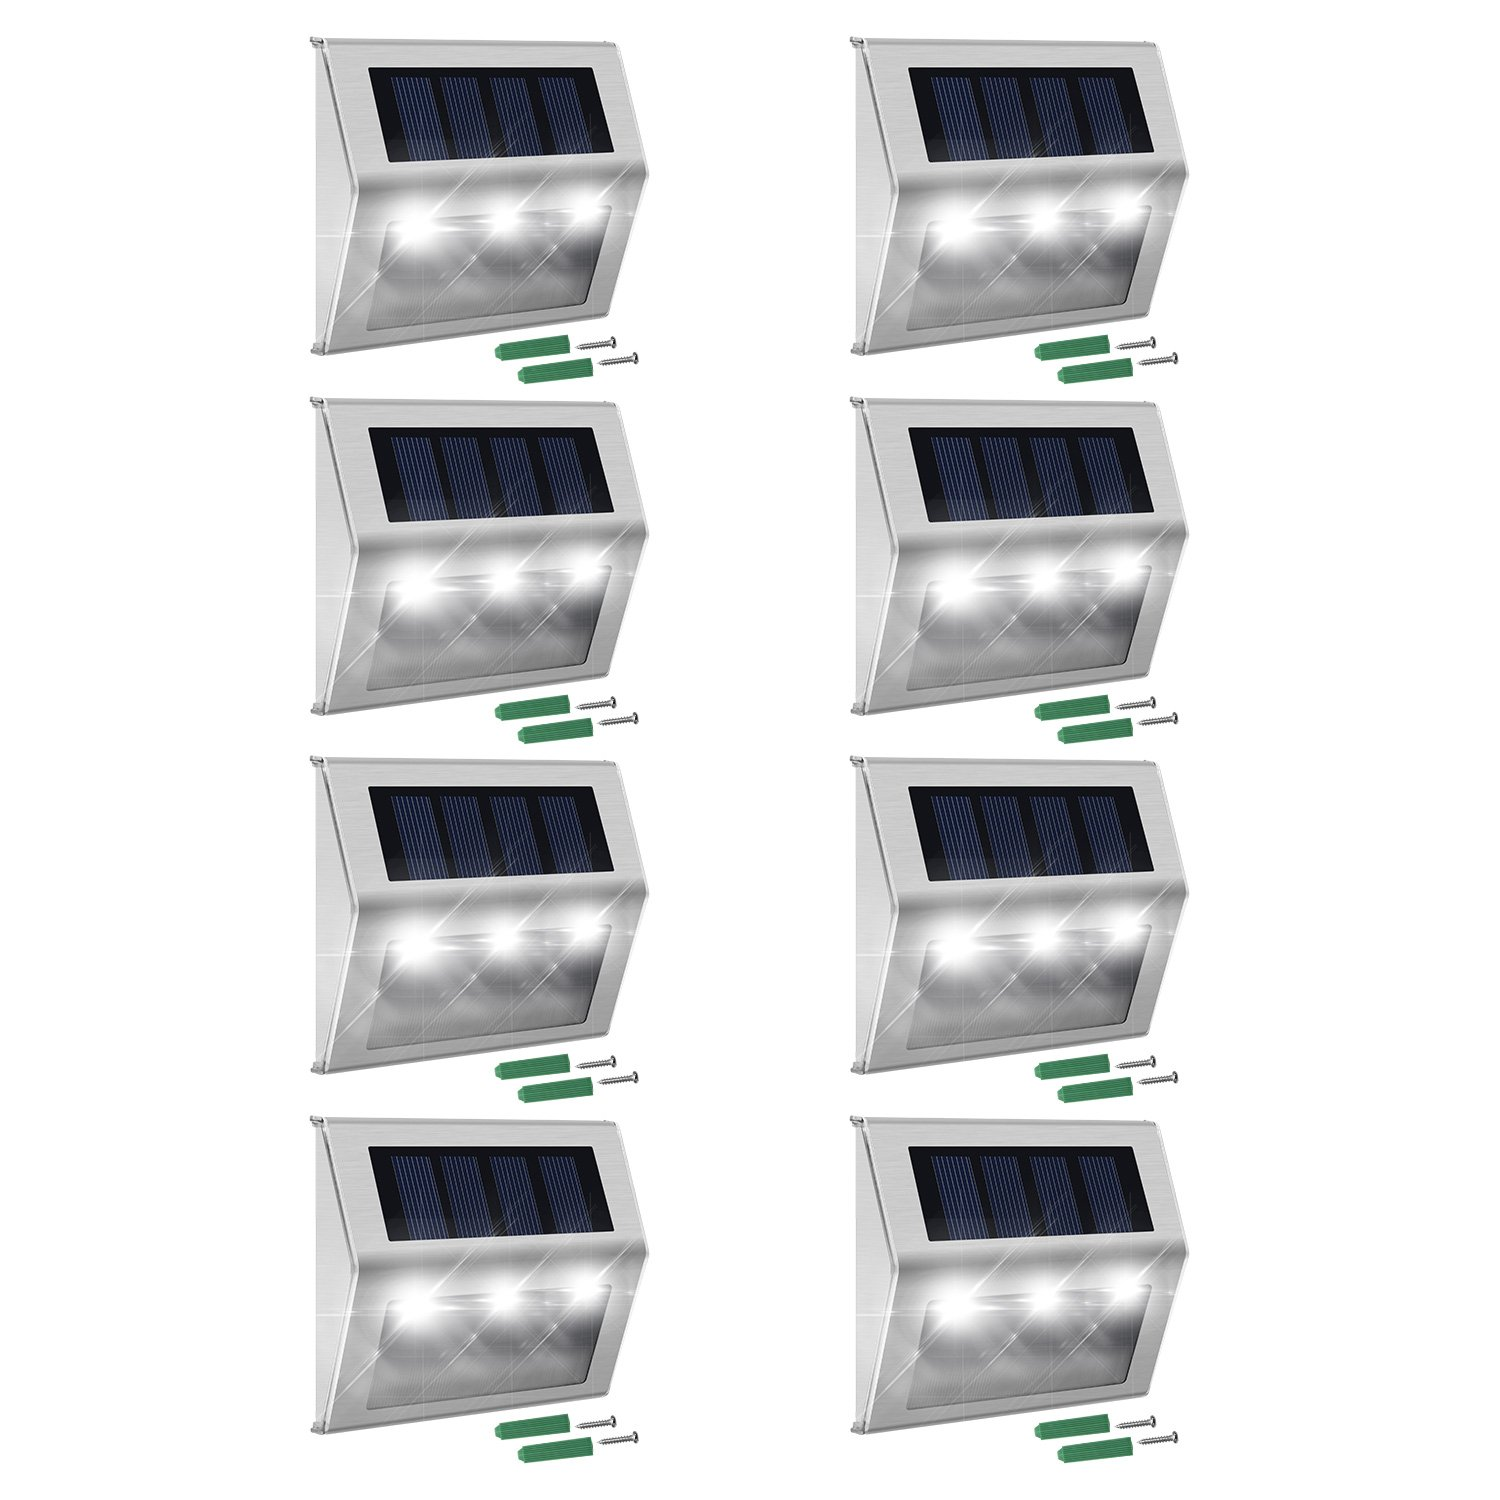 Solar Step Lights JACKYLED 8-Pack LED Solar Powered Weatherproof Outdoor Lighting for Steps Stairs Paths Patio Decks